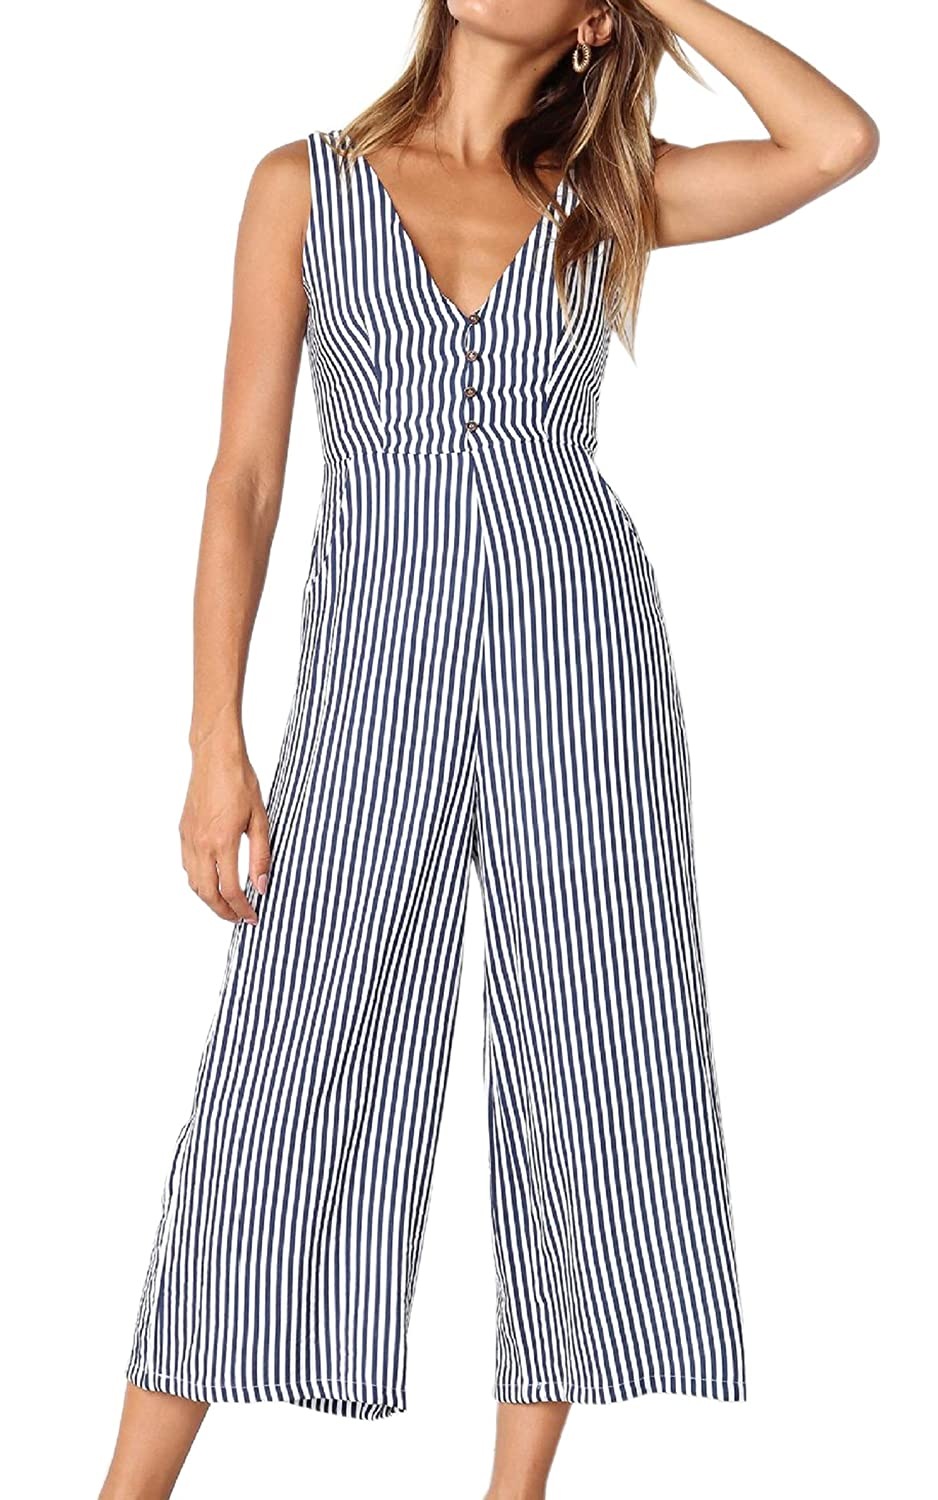 fd579ff49040 Amazon.com  ECOWISH Womens Jumpsuits Casual Button Deep V Neck Sleeveless  High Waist Wide Leg Jumpsuit Rompers with Pockets  Clothing